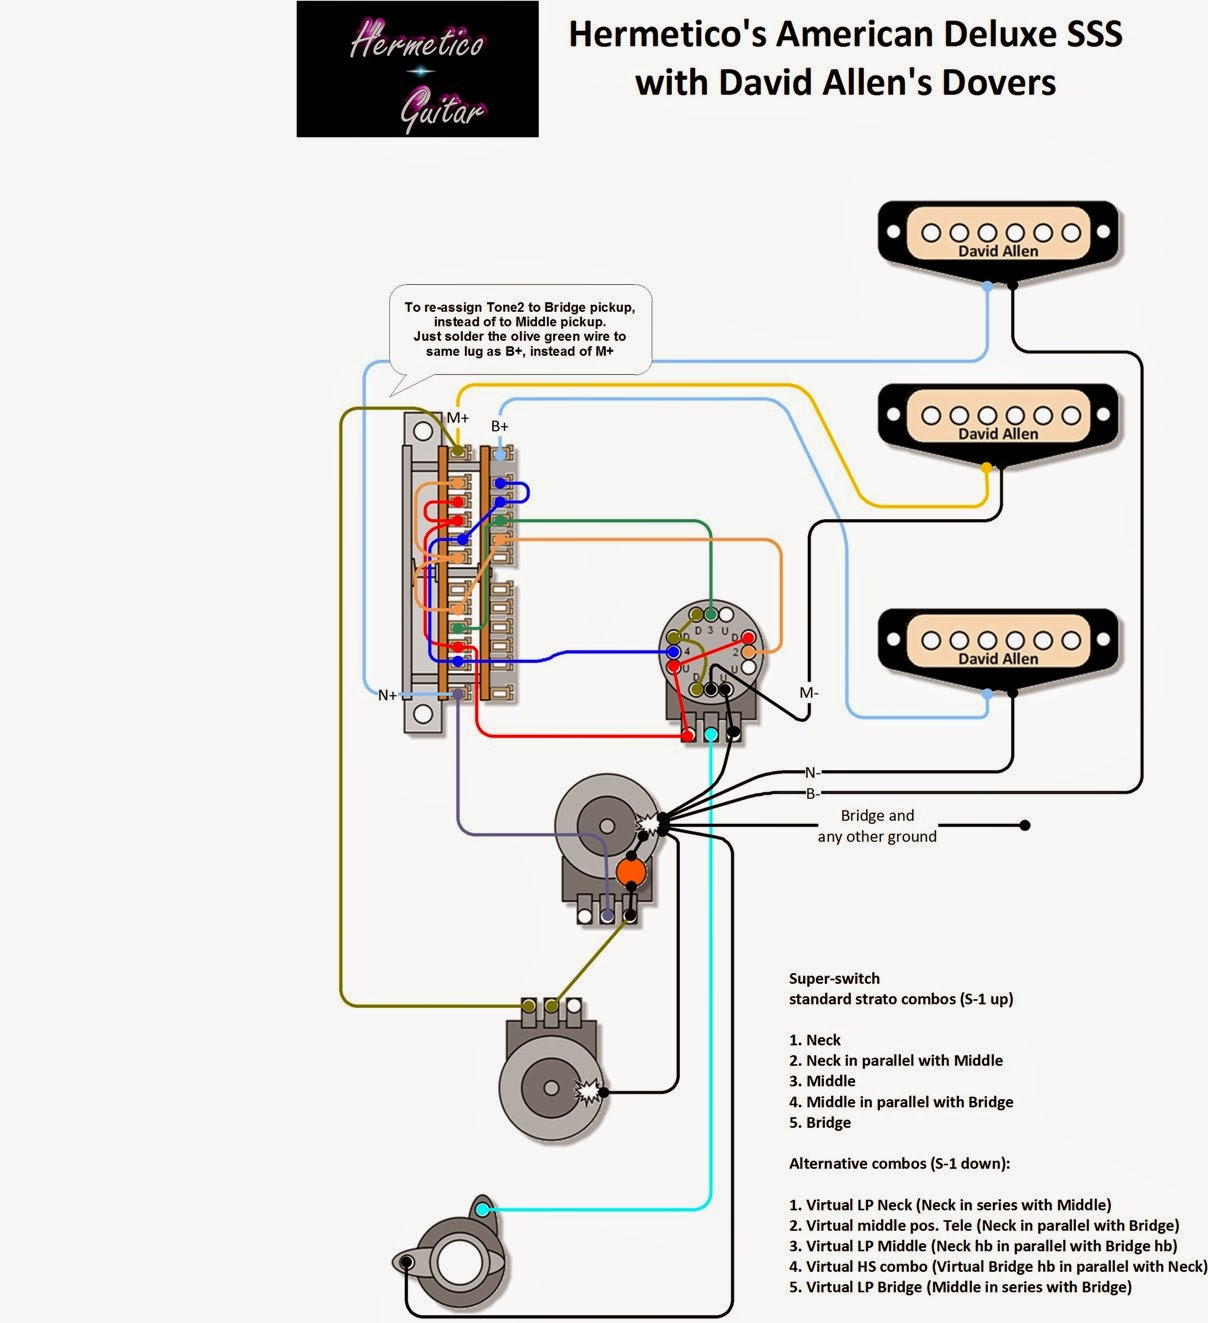 hermetico guitar fender american deluxe sss (2010 model) a american deluxe telecaster wiring diagram hermetico guitar fender american deluxe sss (2010 model) a succesfully mod story